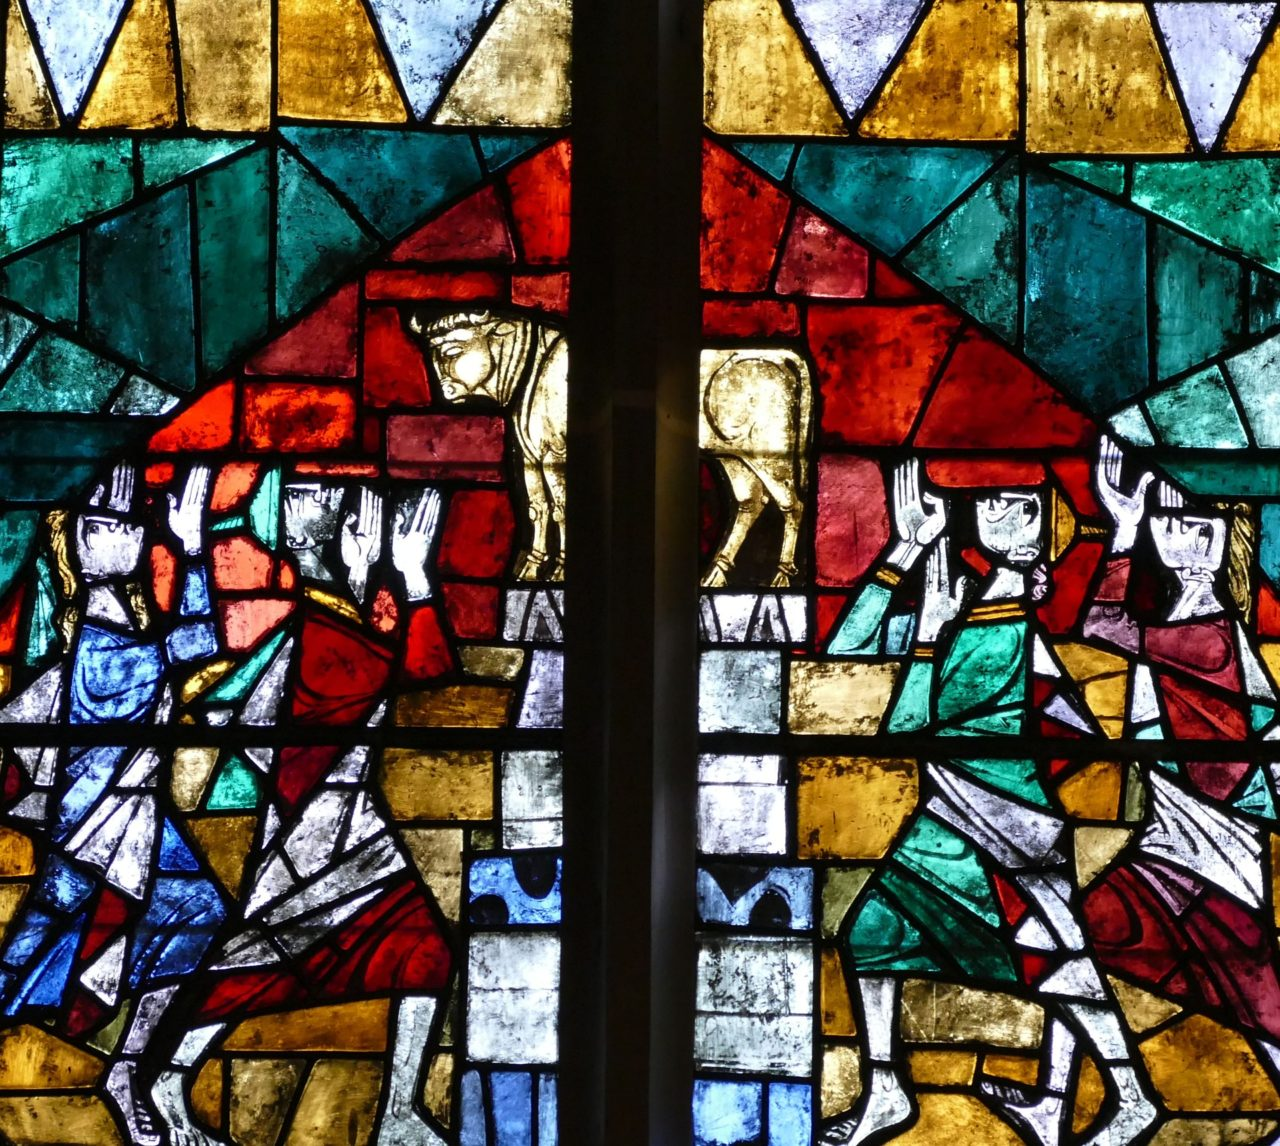 church-window-3804195_1920